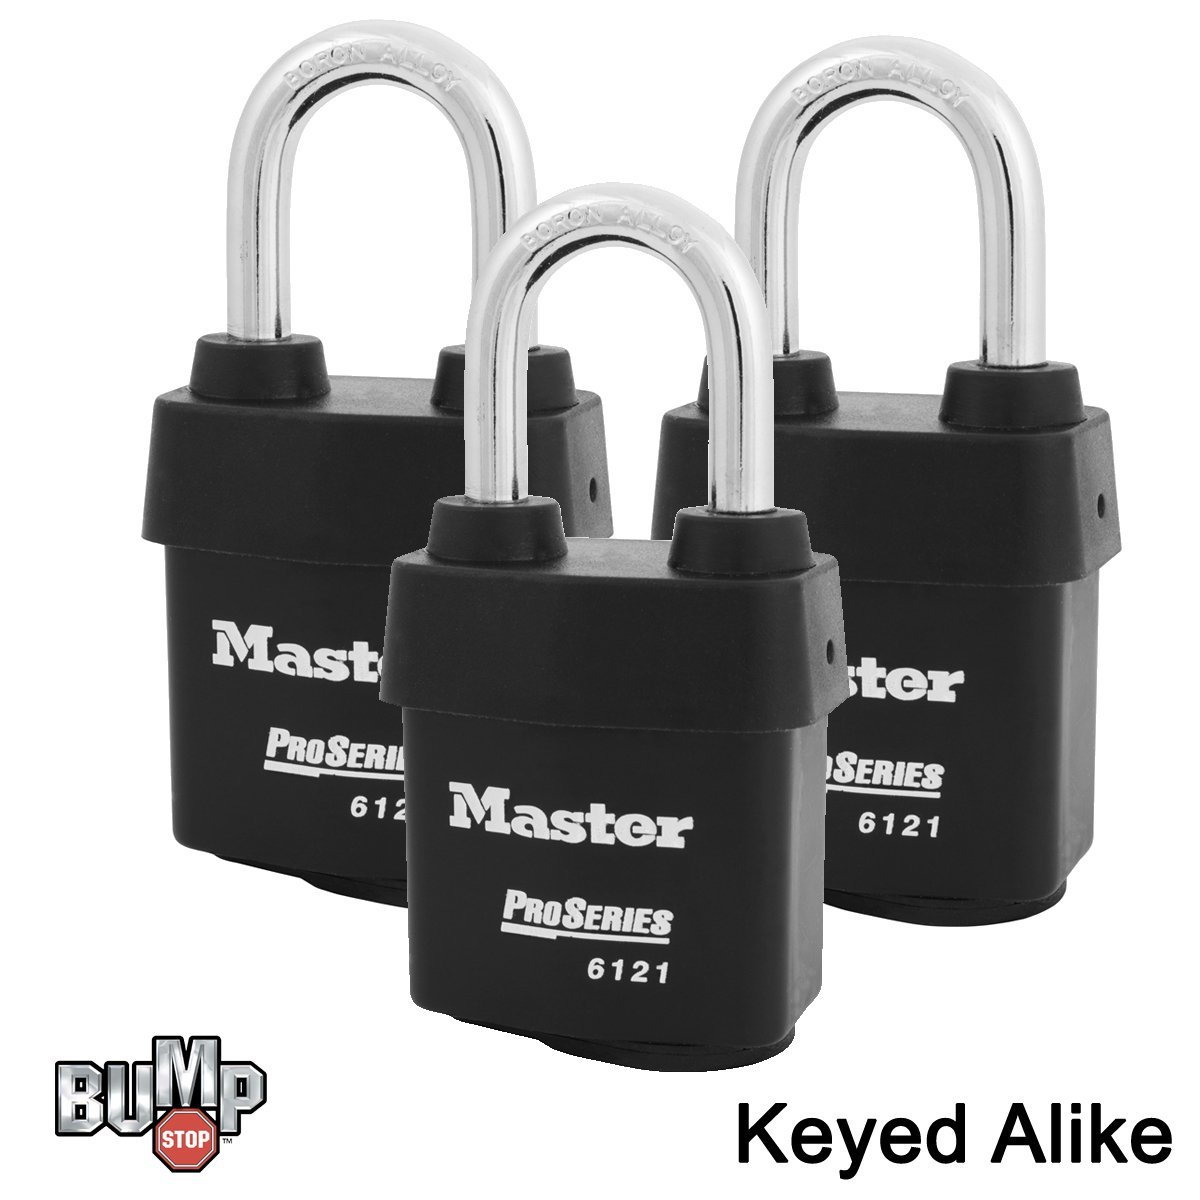 Master Lock - 6121NKALF-3 - Three (3) High Security Pro Series Padlocks w/ BumpStop Technology